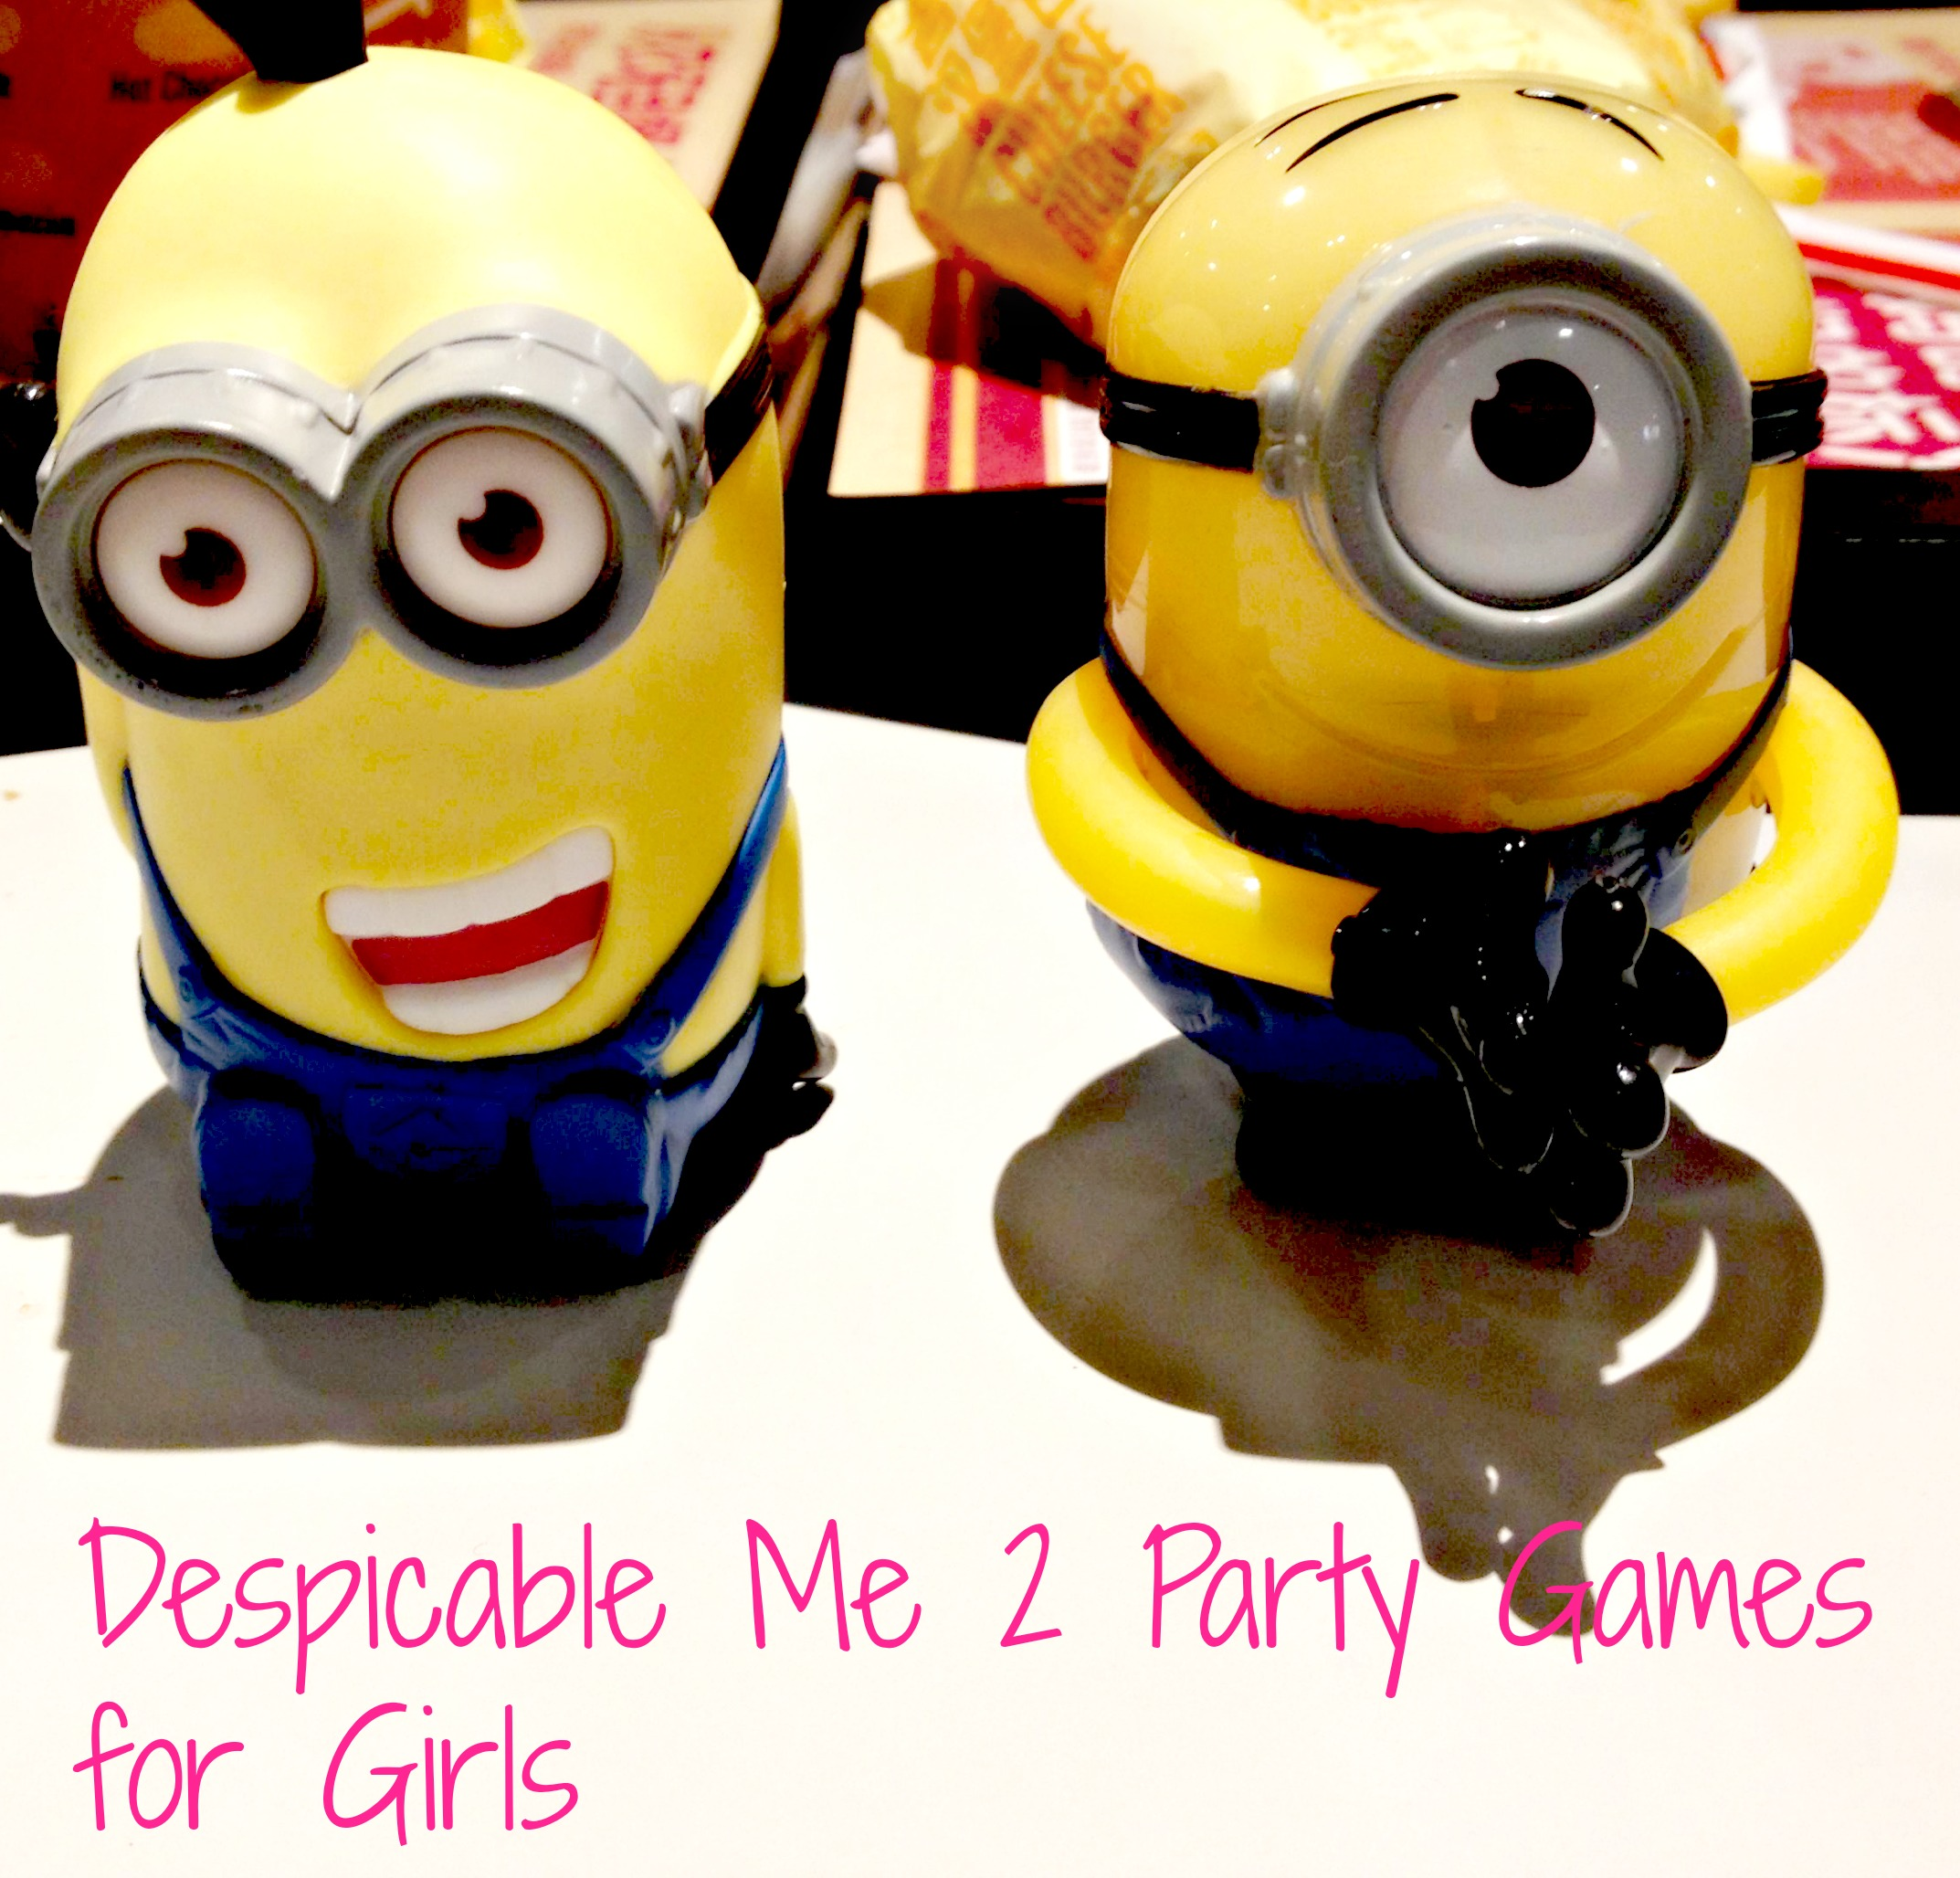 Beautiful Despicable Me 2 Party Games 2146 x 2056 · 686 kB · jpeg